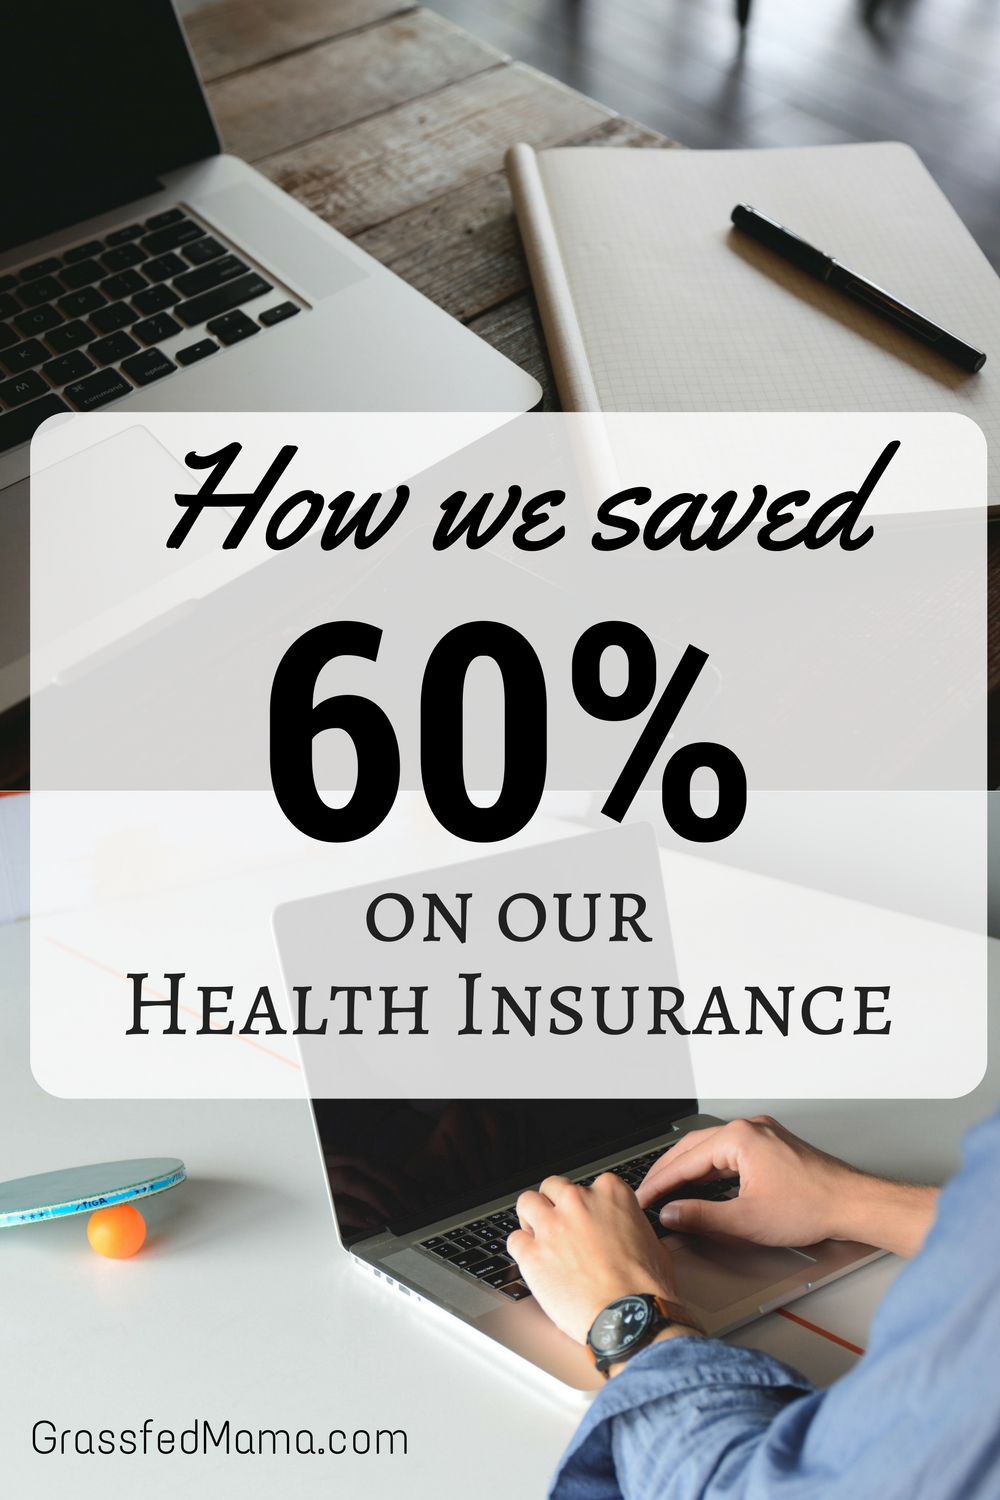 How we saved 60% on our health insurance